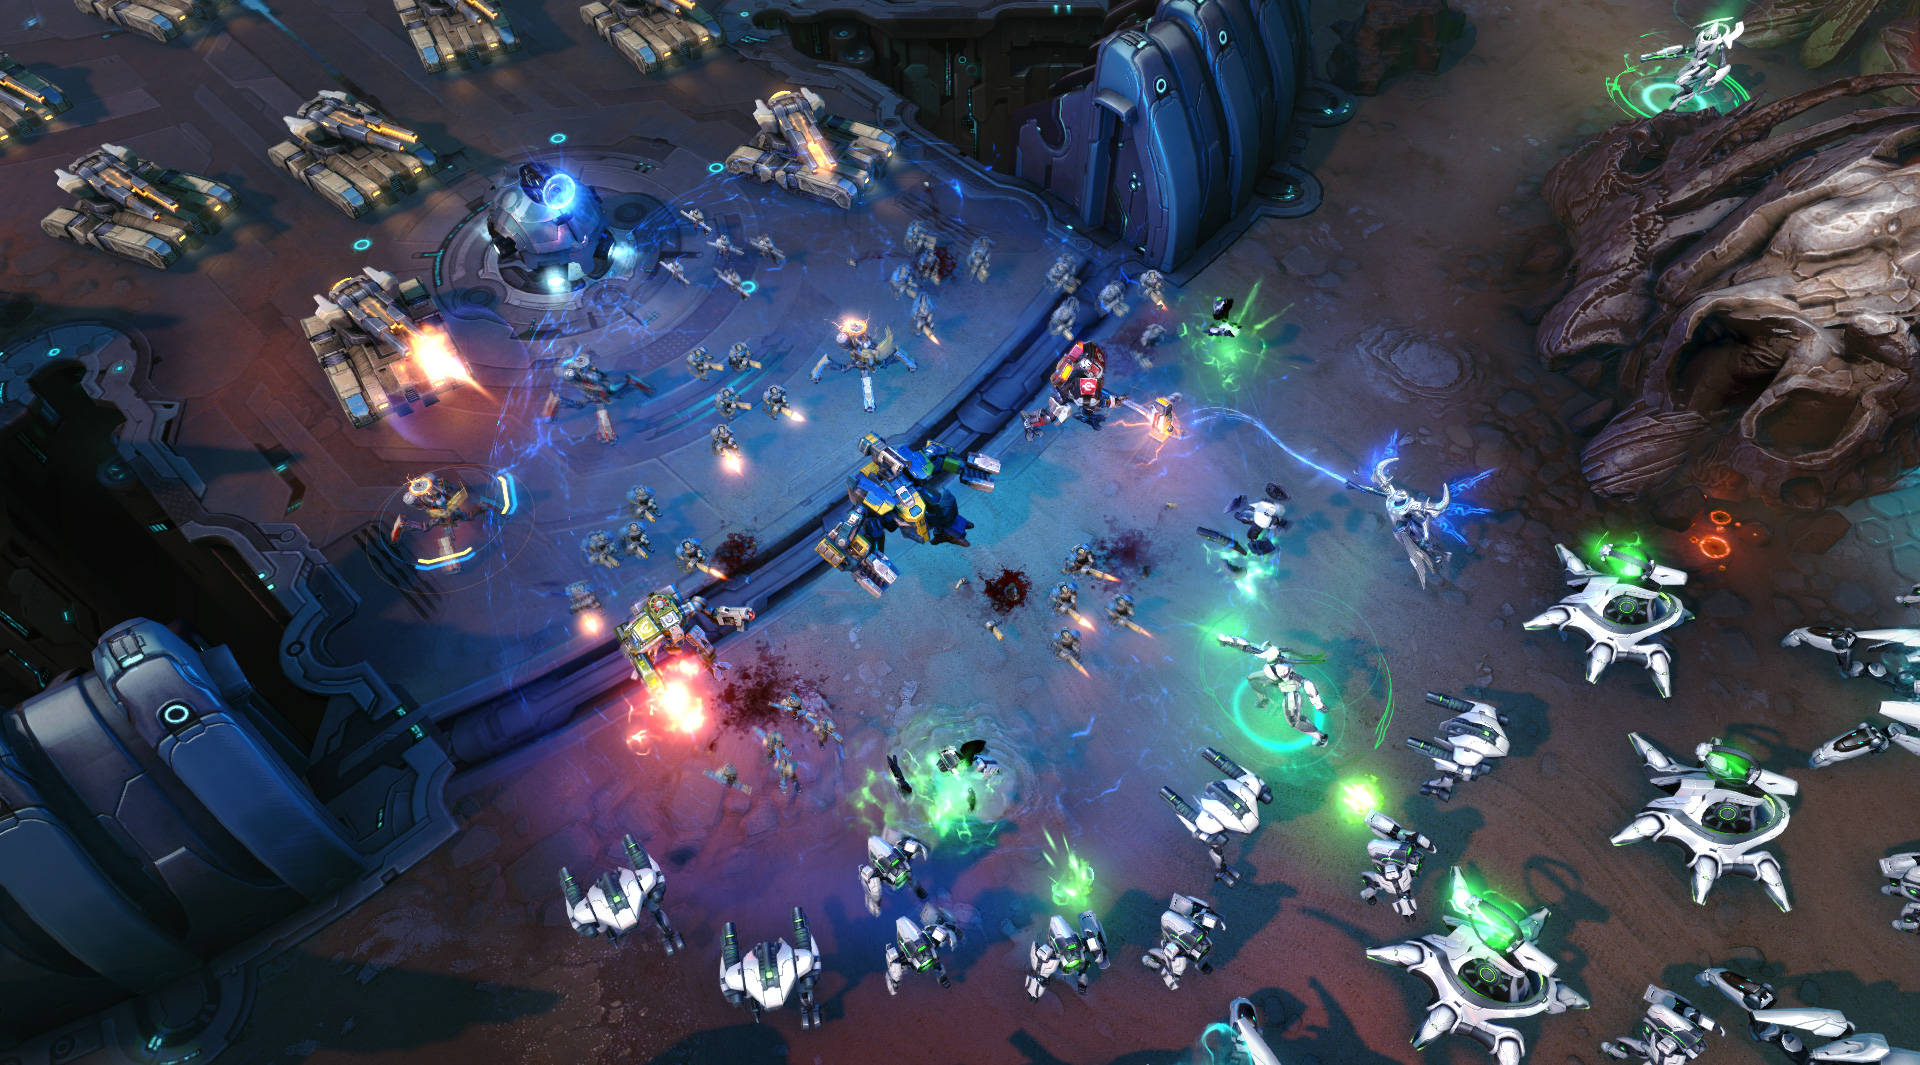 Bringing real-time strategy to the MOBA genre with Namco's Supernova